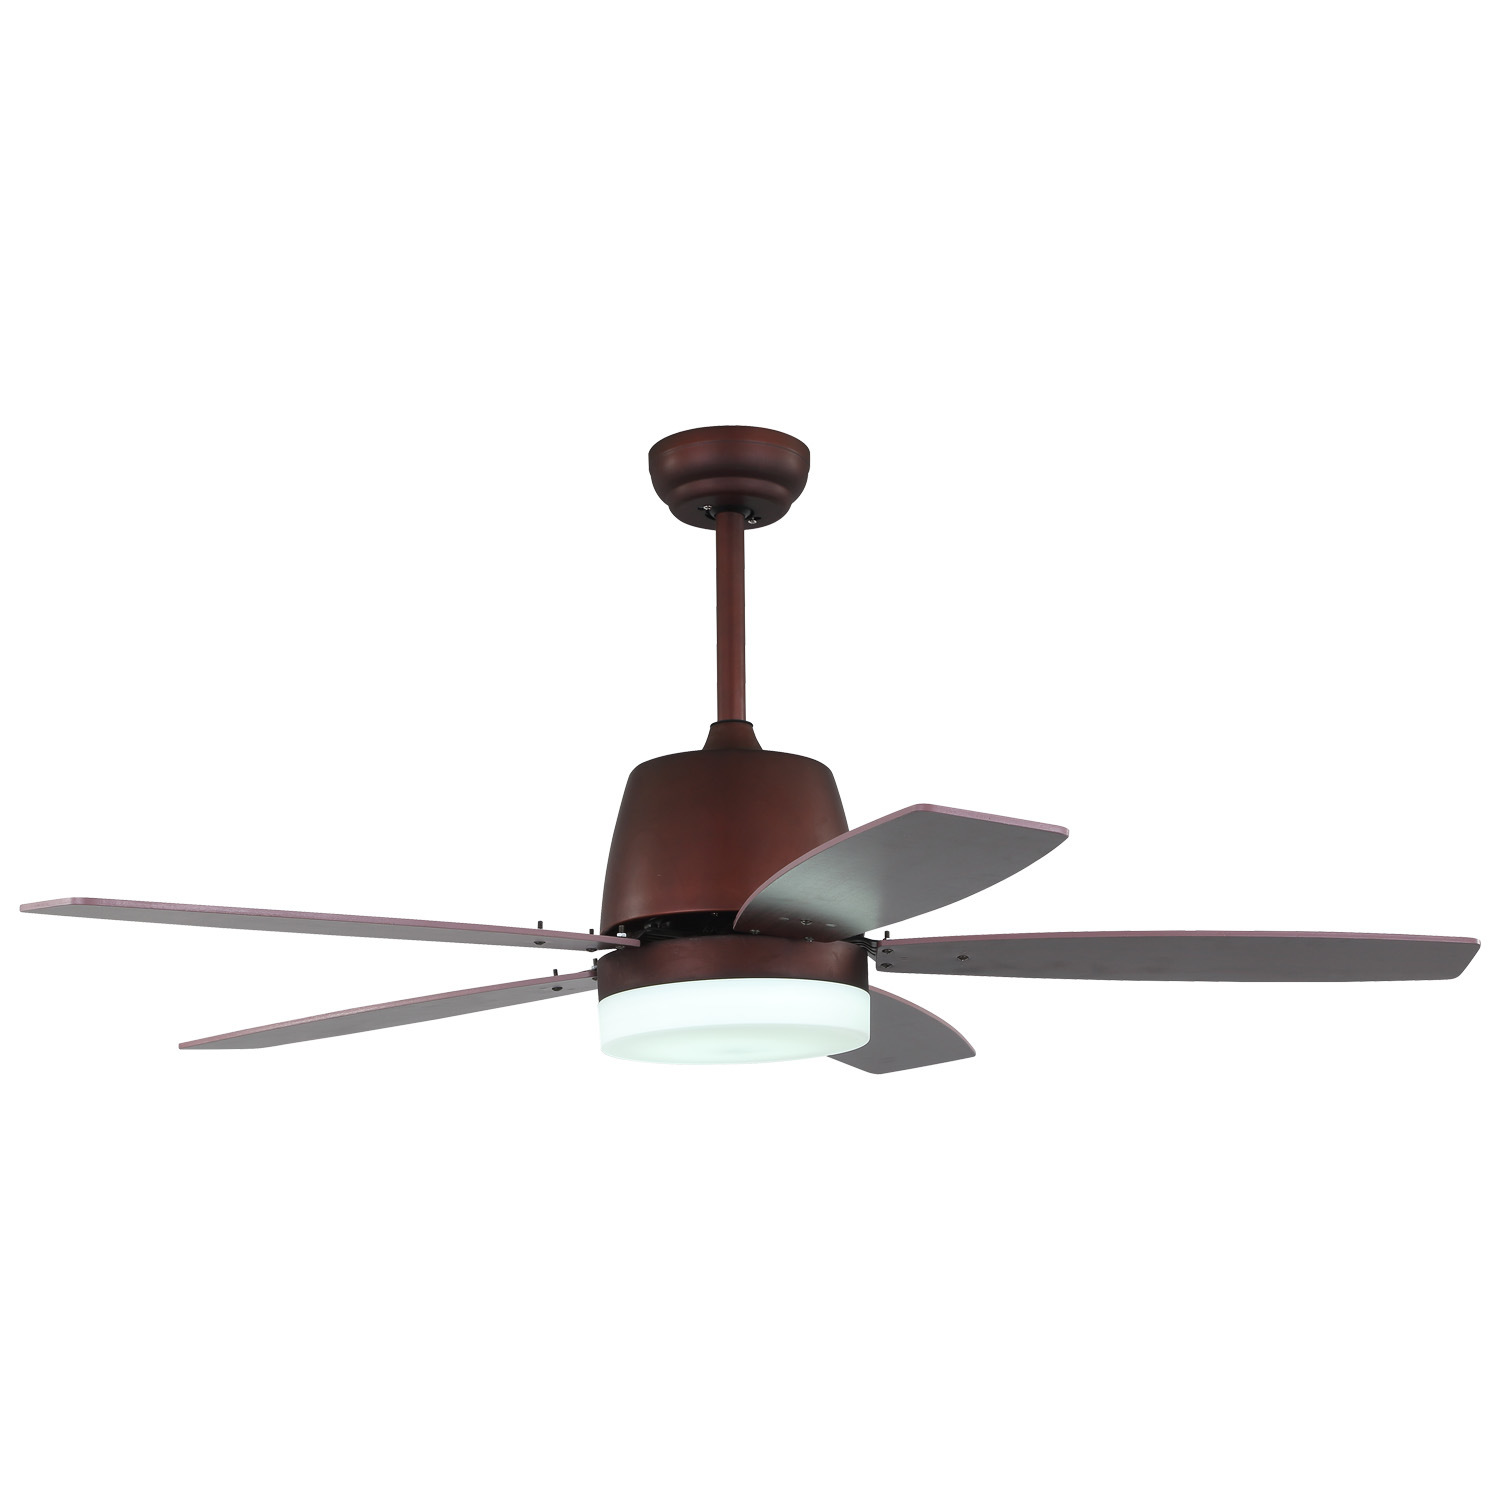 China Dc Ceiling Fan Ac110 240v Wide Voltage Range Available Energy Lights Fans Without Saving